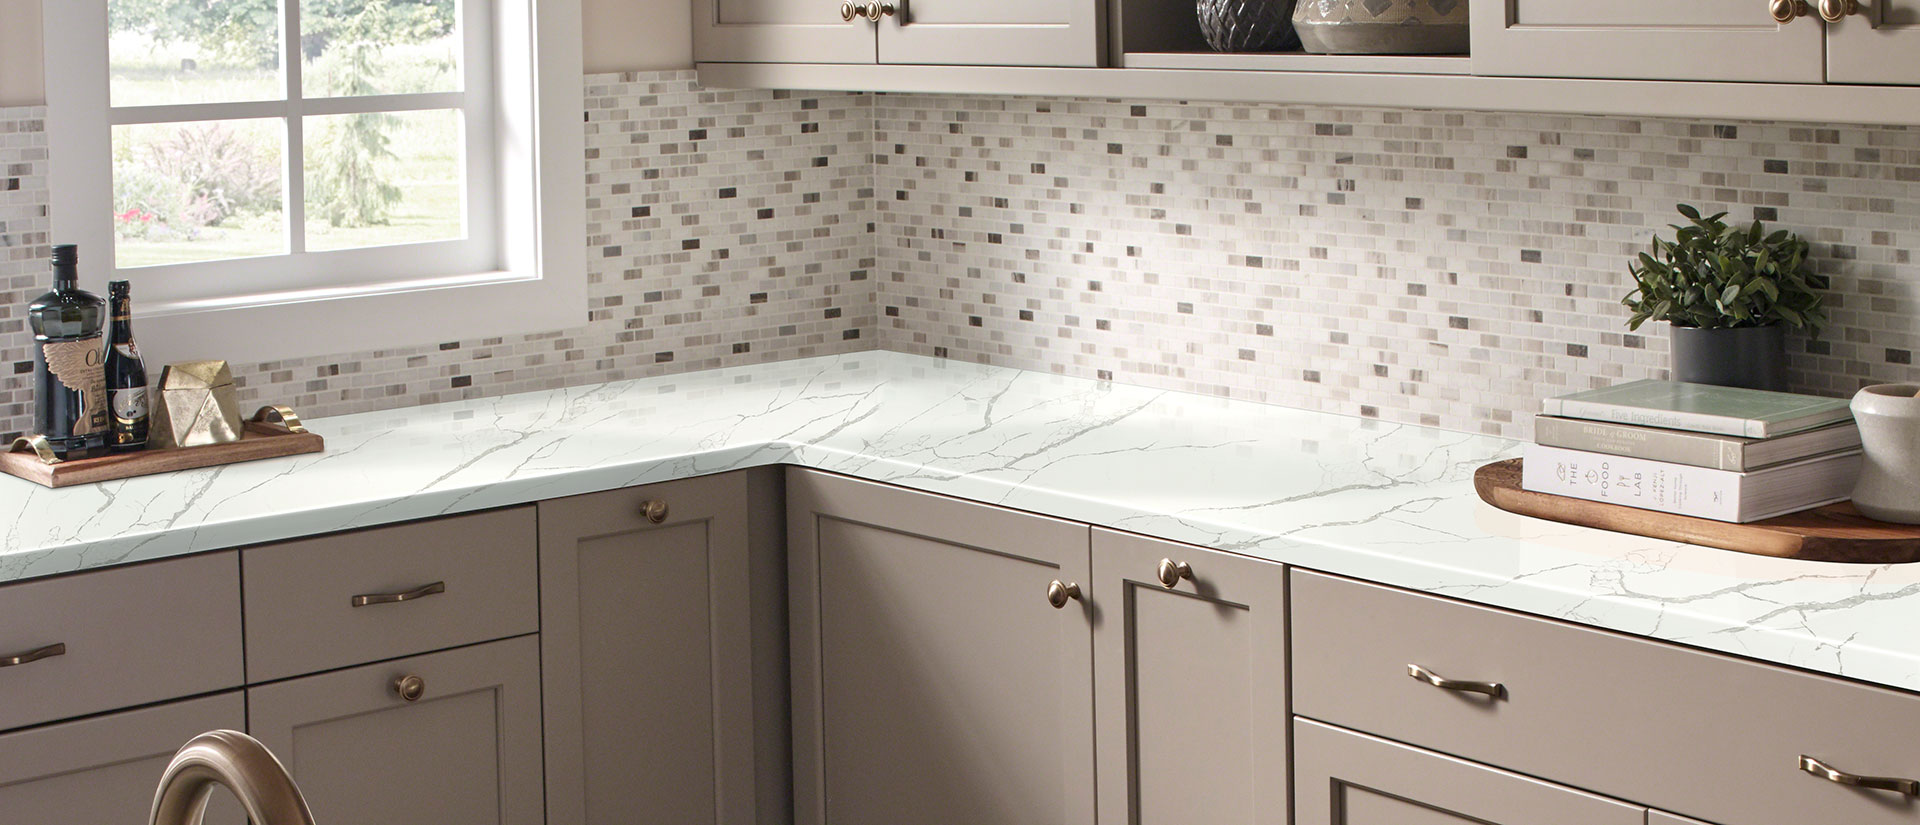 Quartz Countertops Calacatta Laza Calacatta Laza Quartz Countertops Concrete Finish Quartz